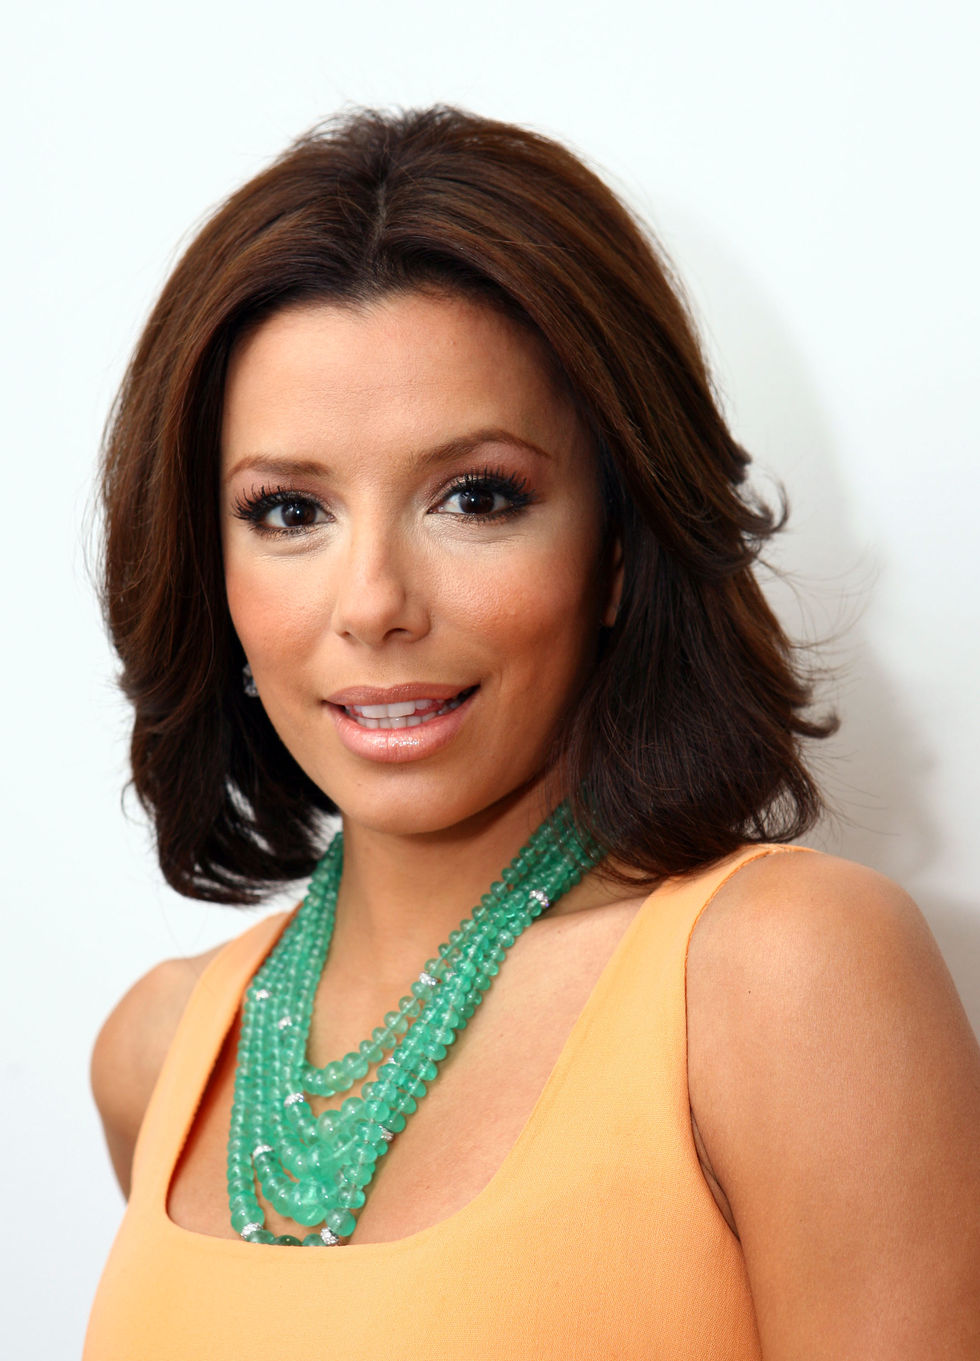 eva-longoria-at-cw11-morning-show-01